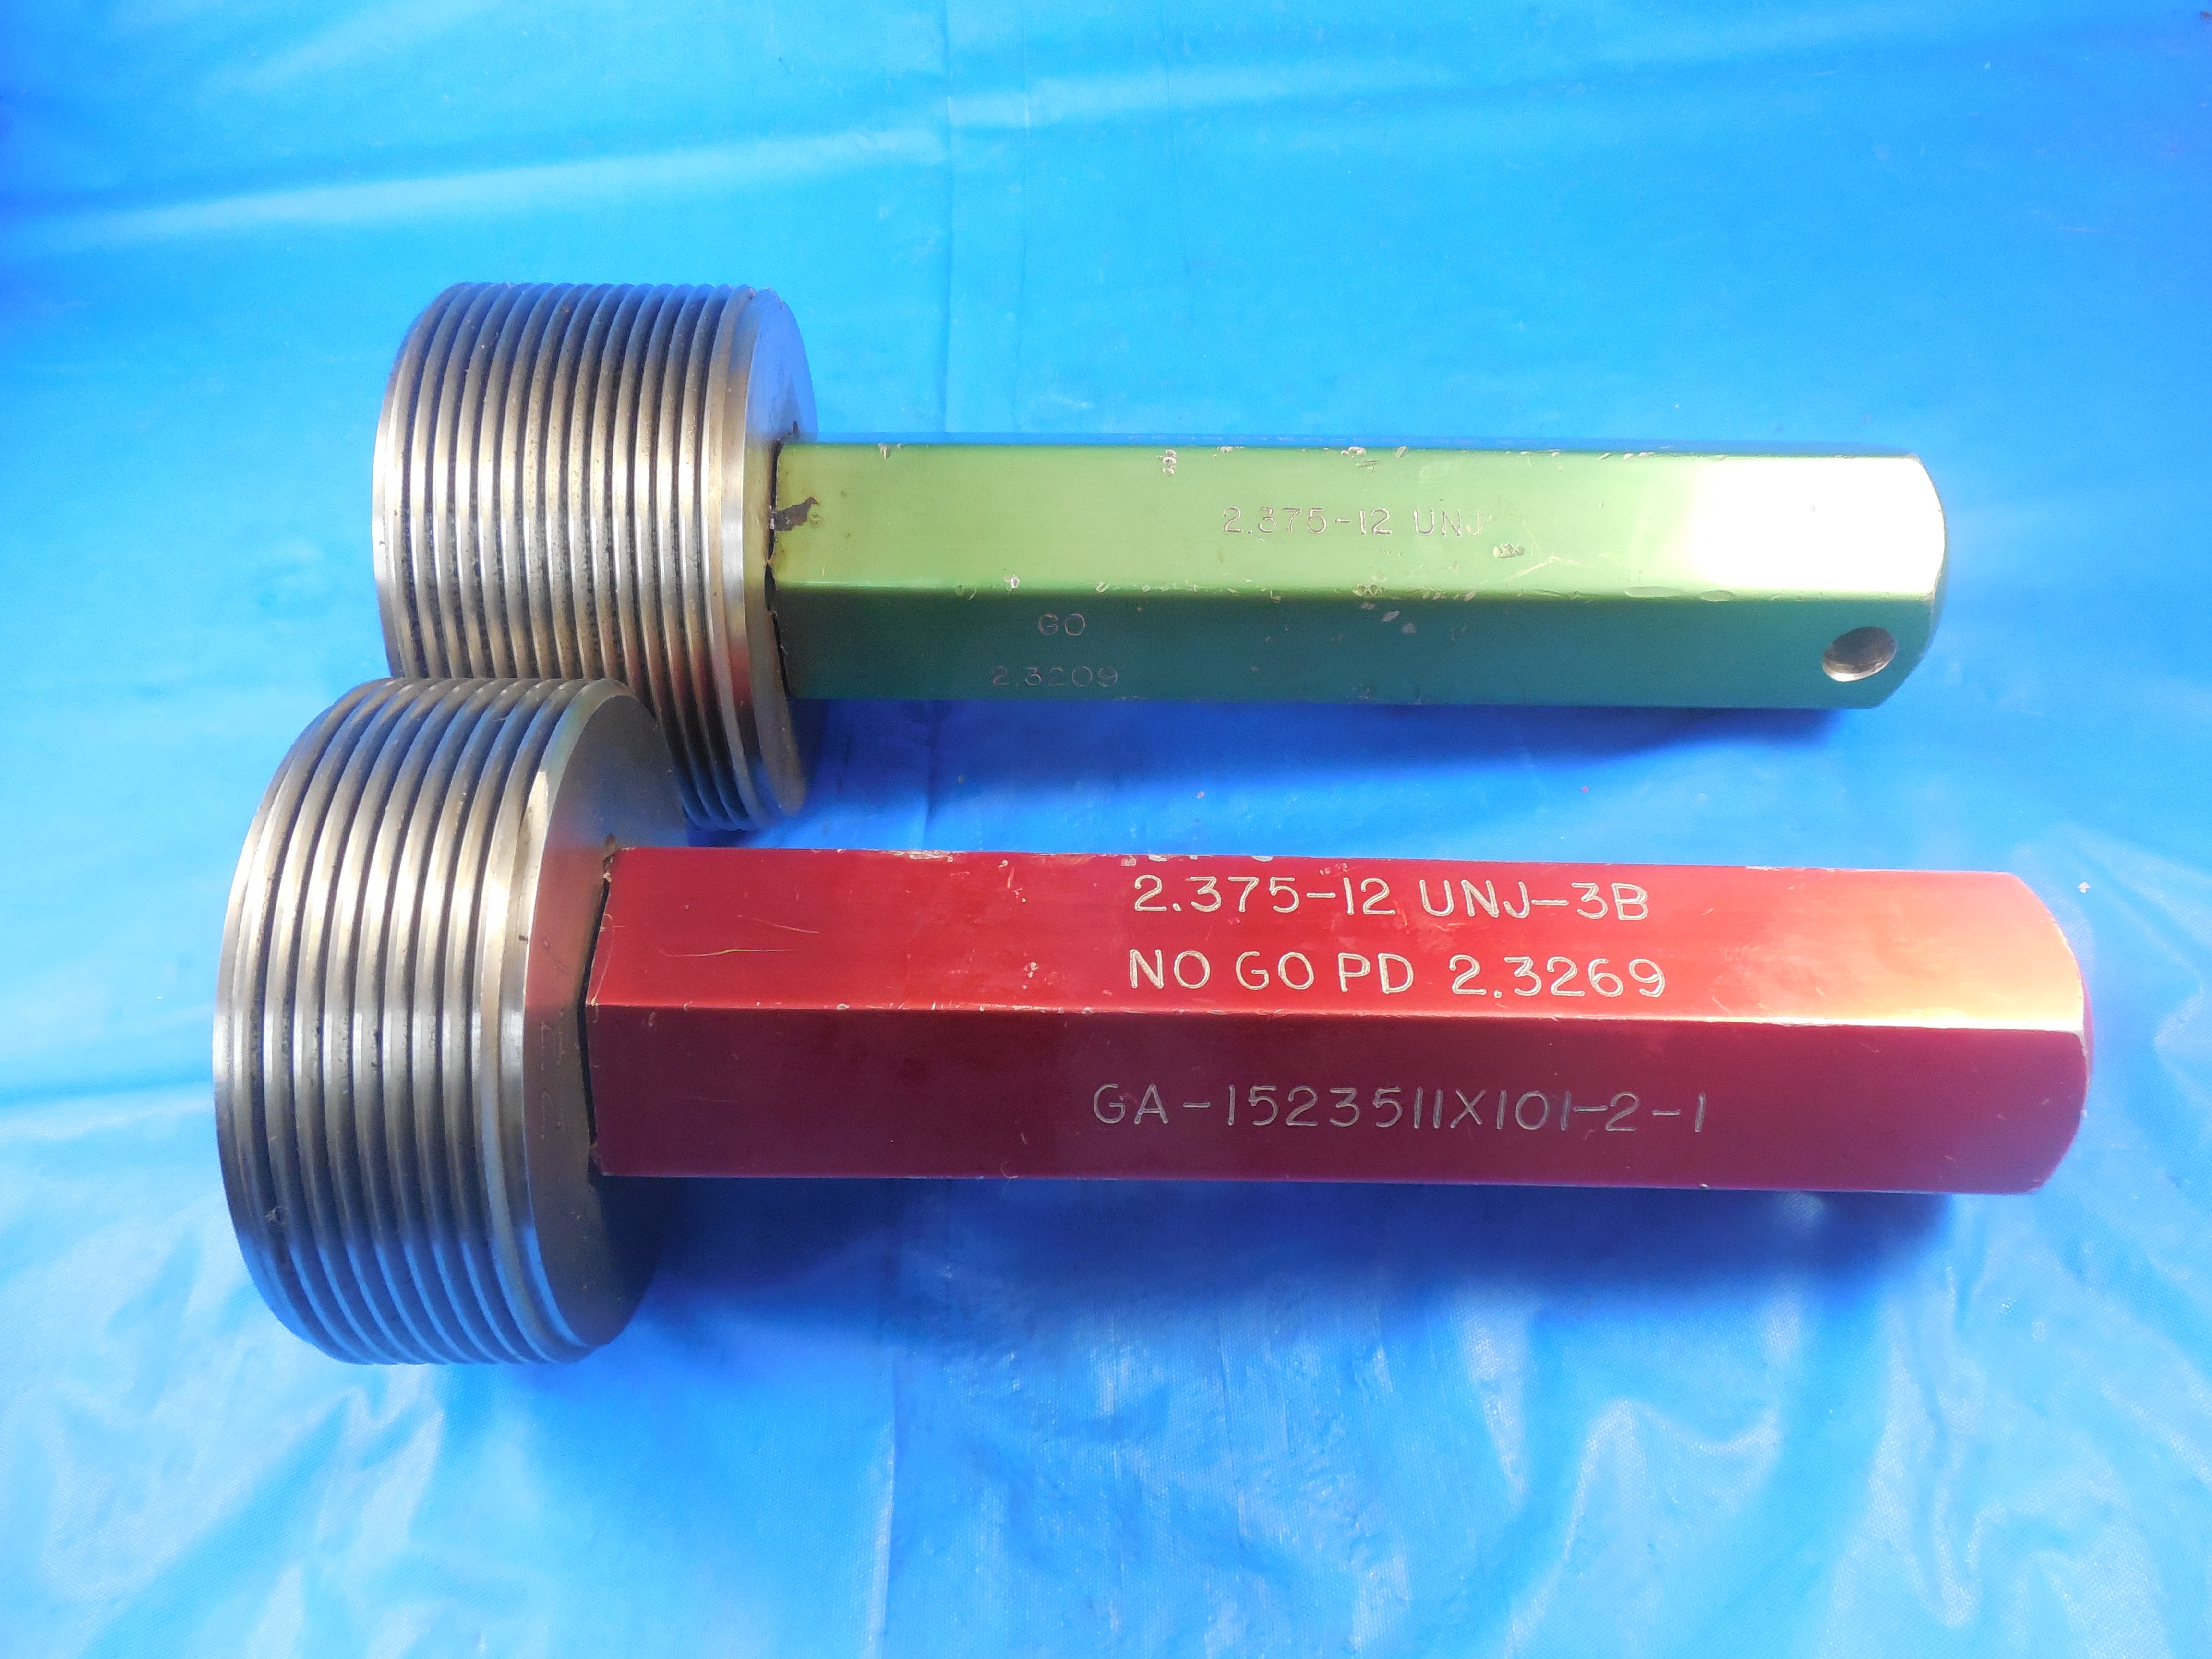 2 3//8 12 NS 3 GO THREAD RING GAGE 2.375 P.D.= 2.3209 TOOLING TOOLMAKER TOOLS